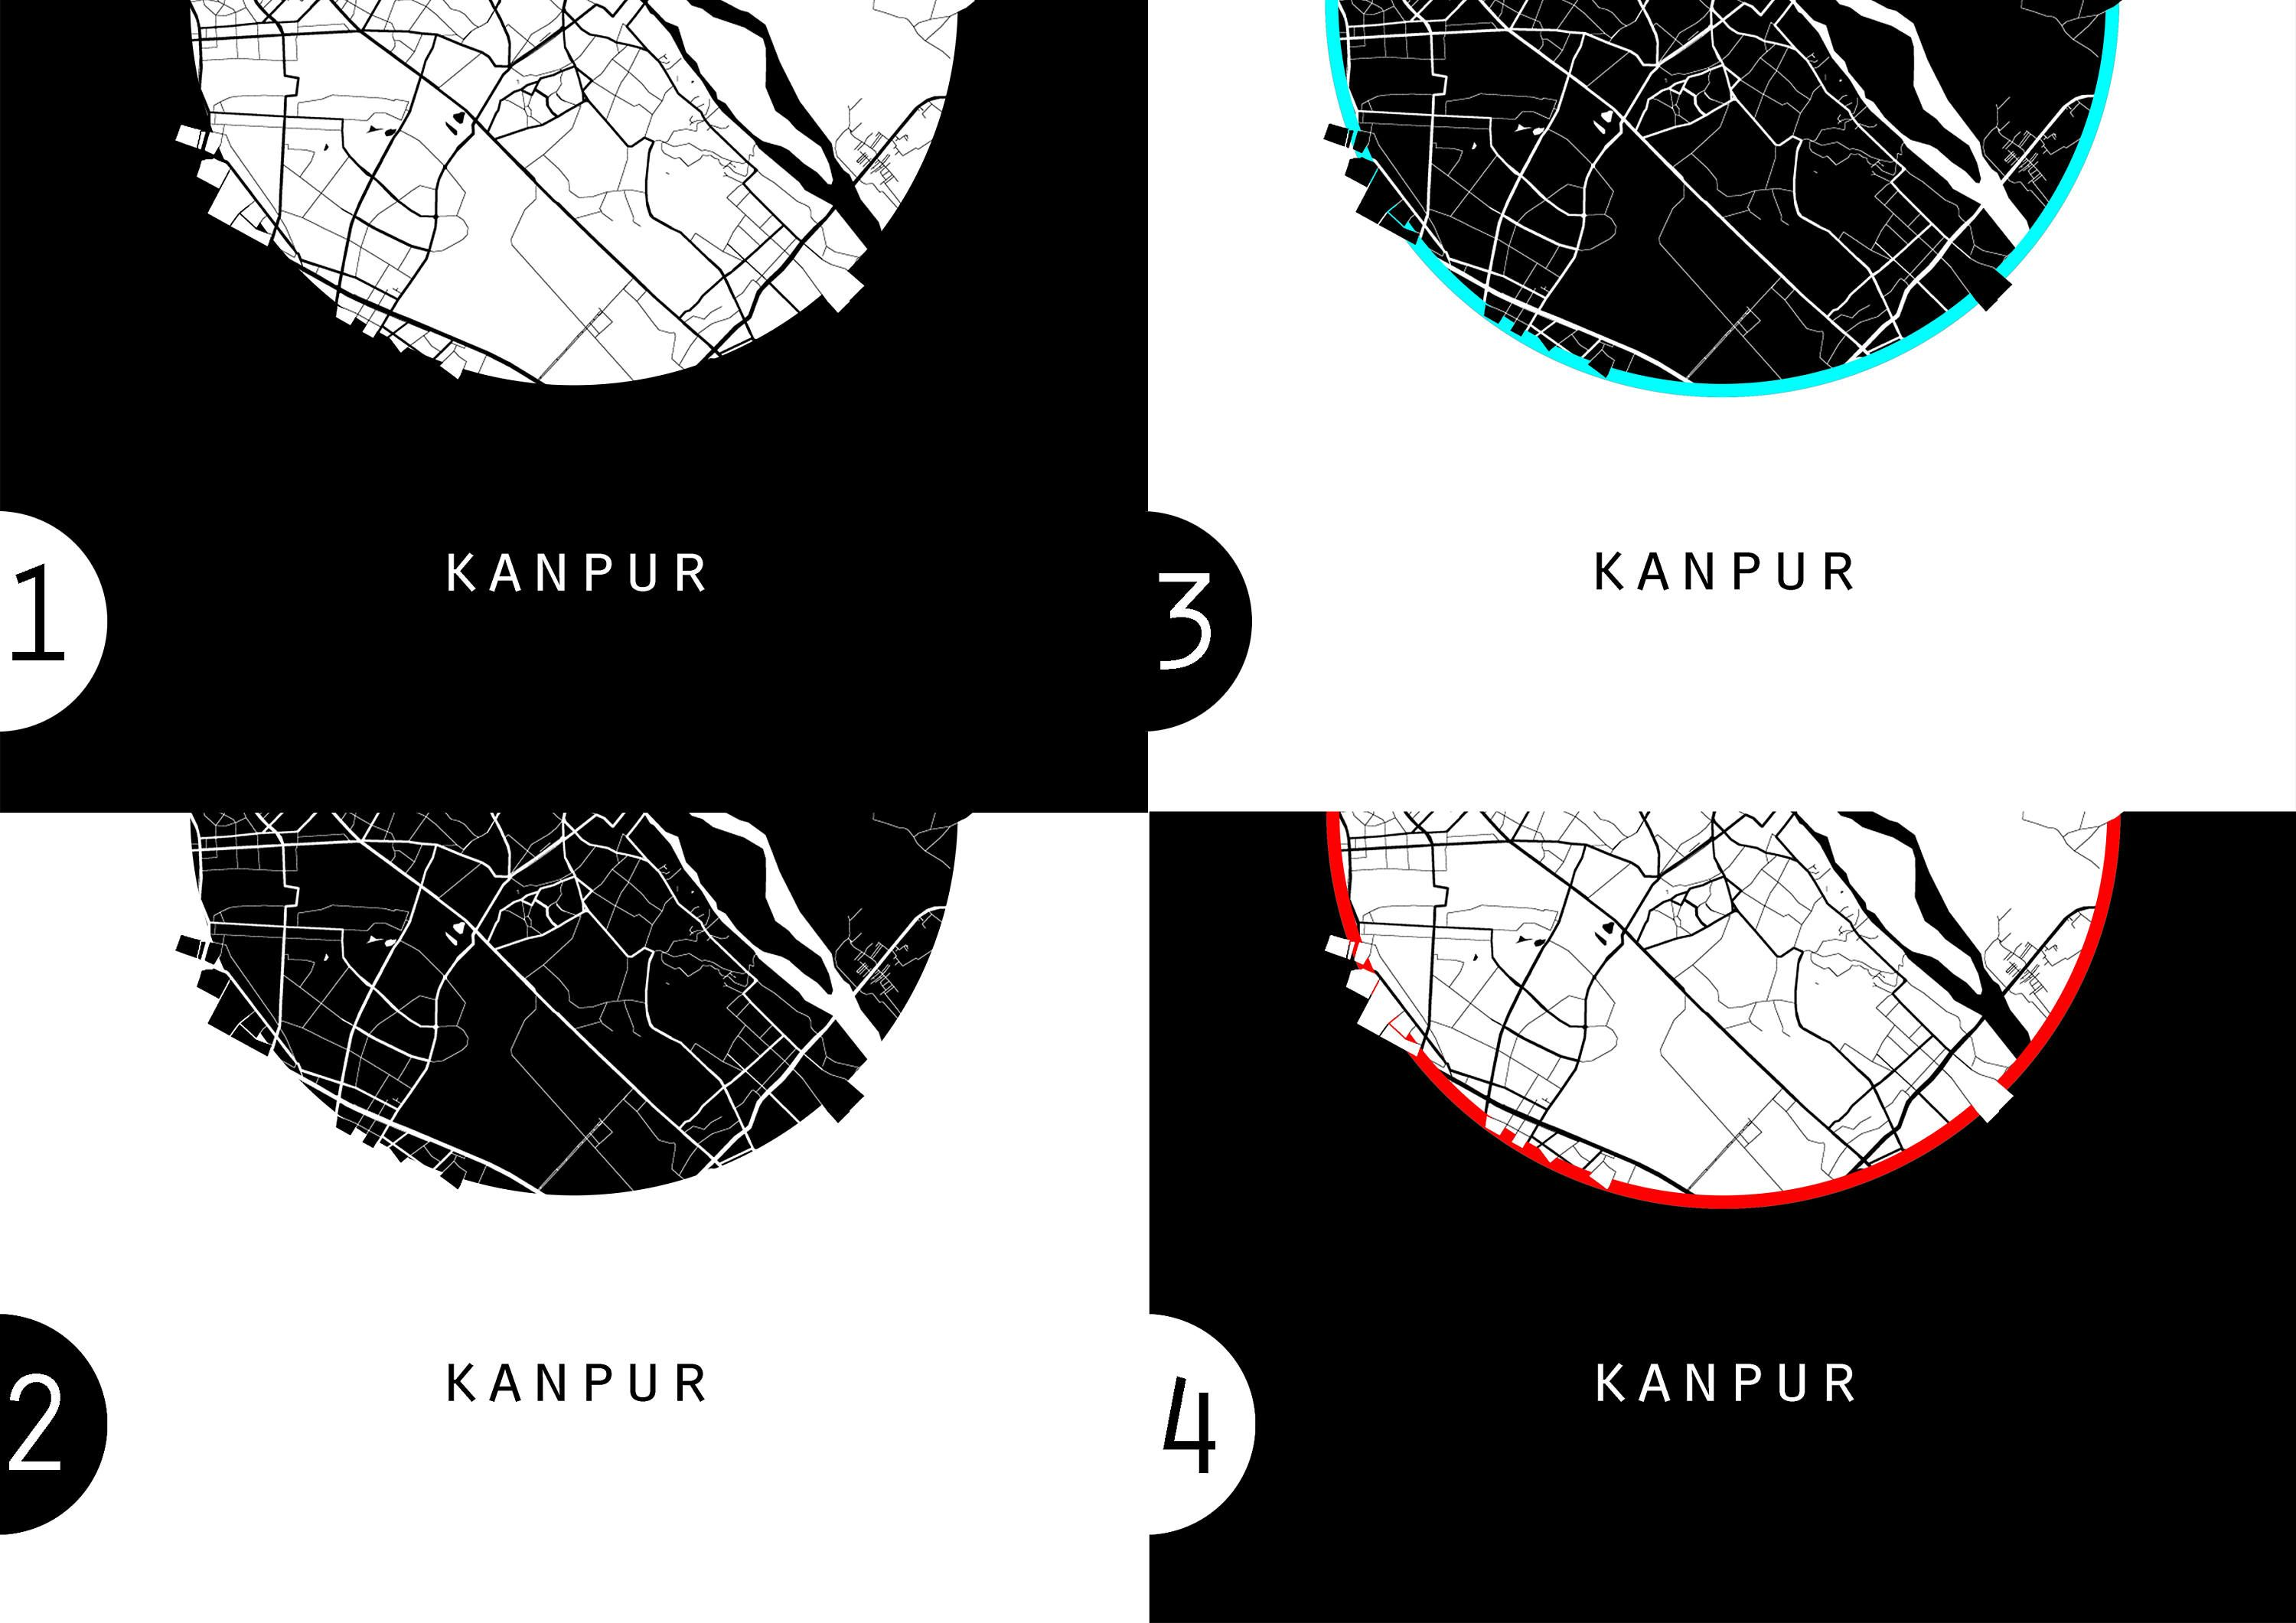 Kanpur map world map india map maps black and white map kanpur map world map india map maps black and white map minimalistic map minimal map black mapwhite mapminimal india map gumiabroncs Choice Image